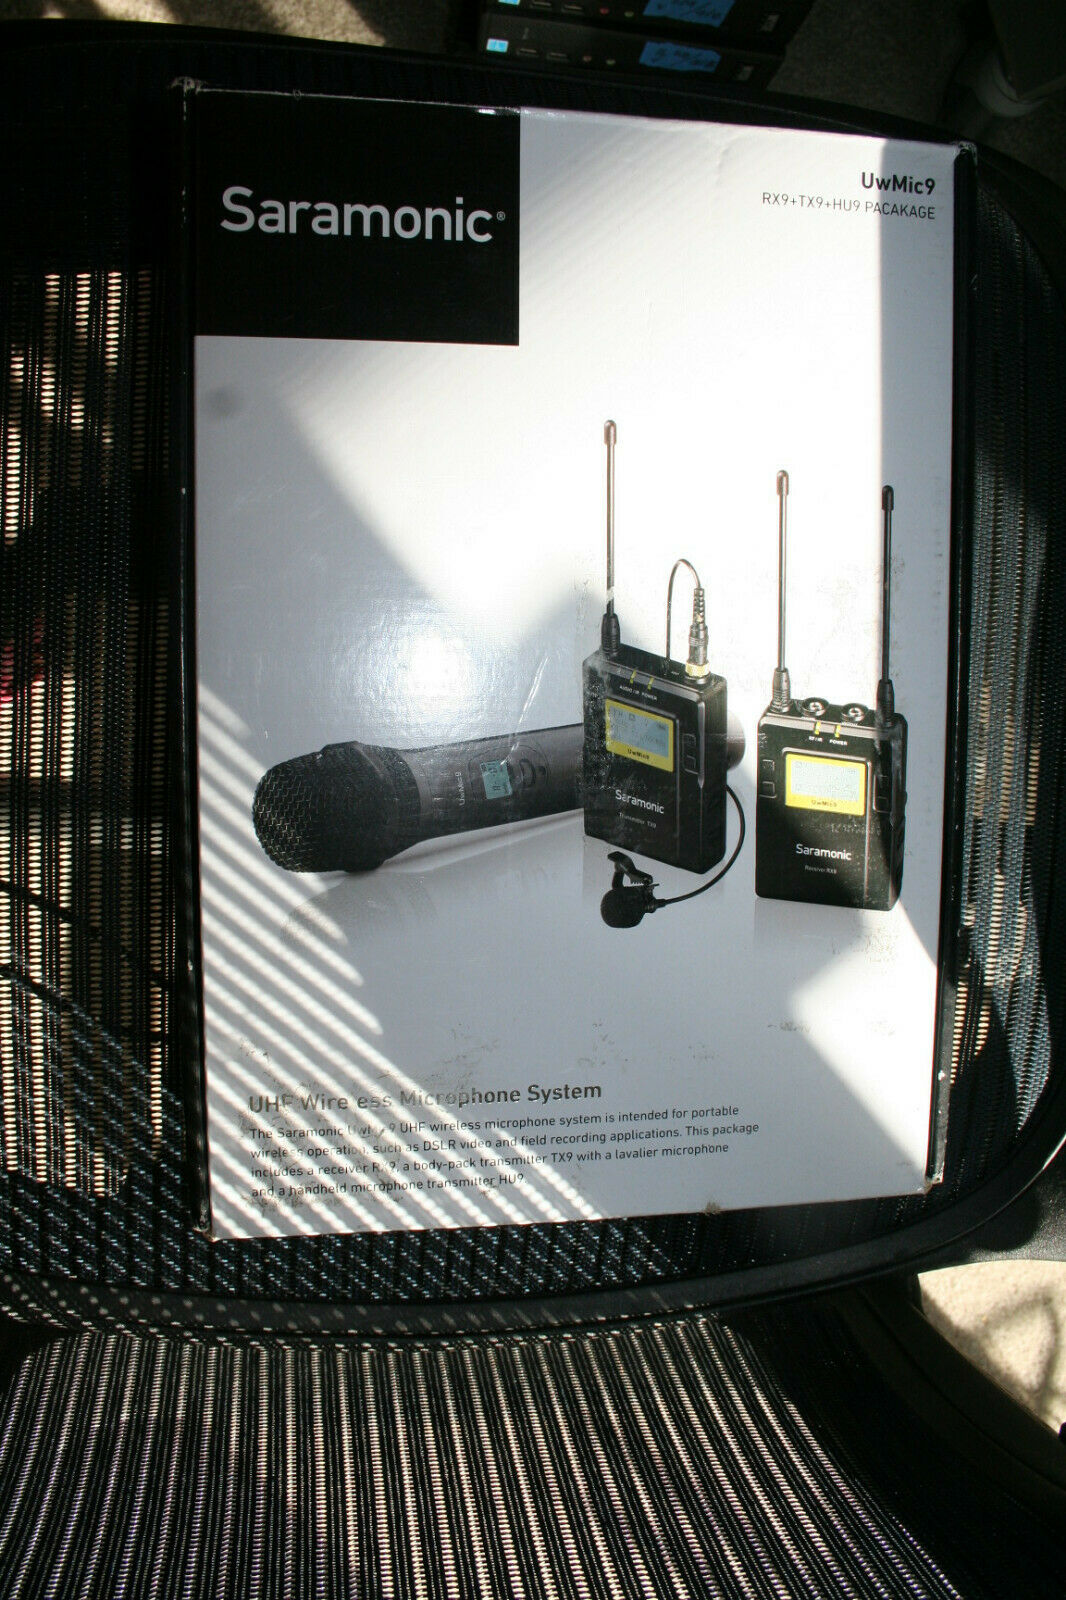 Saramonic UwMic9 UHF Wireless Microphone System